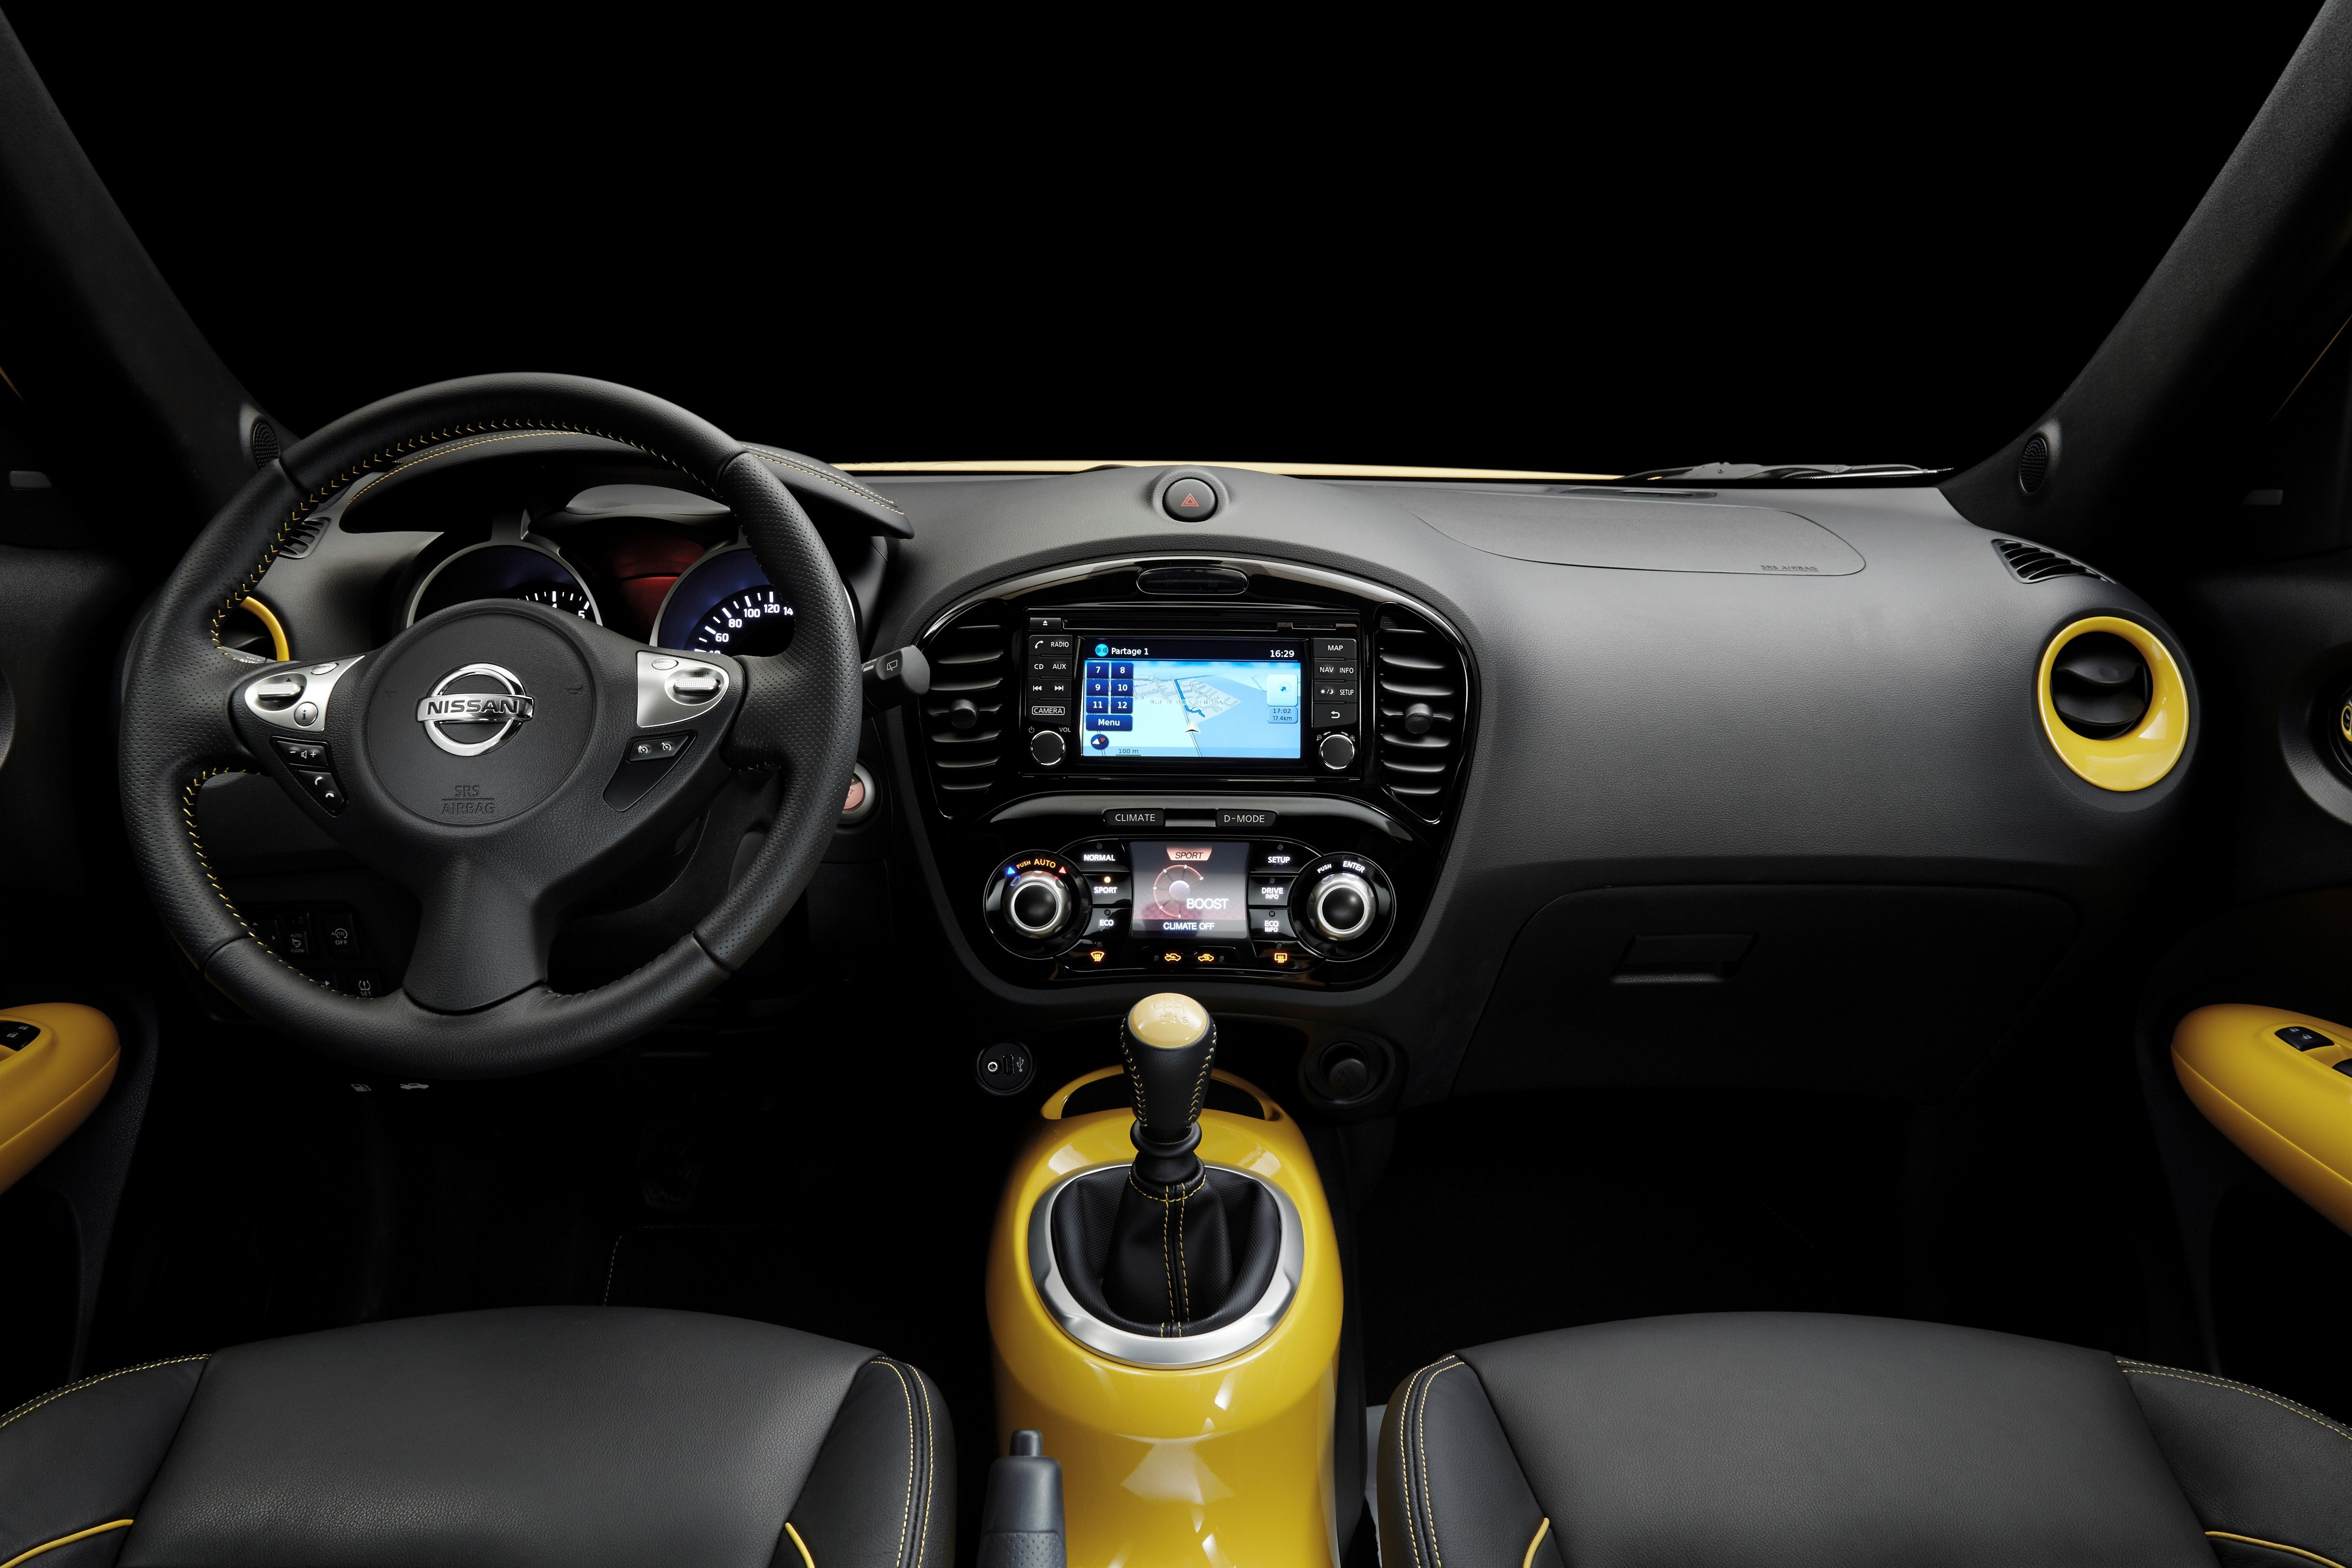 2015 Nissan Juke Stays Funky With A Dash Of 370z Style Nissan Juke Nissan Juke Interior New Nissan